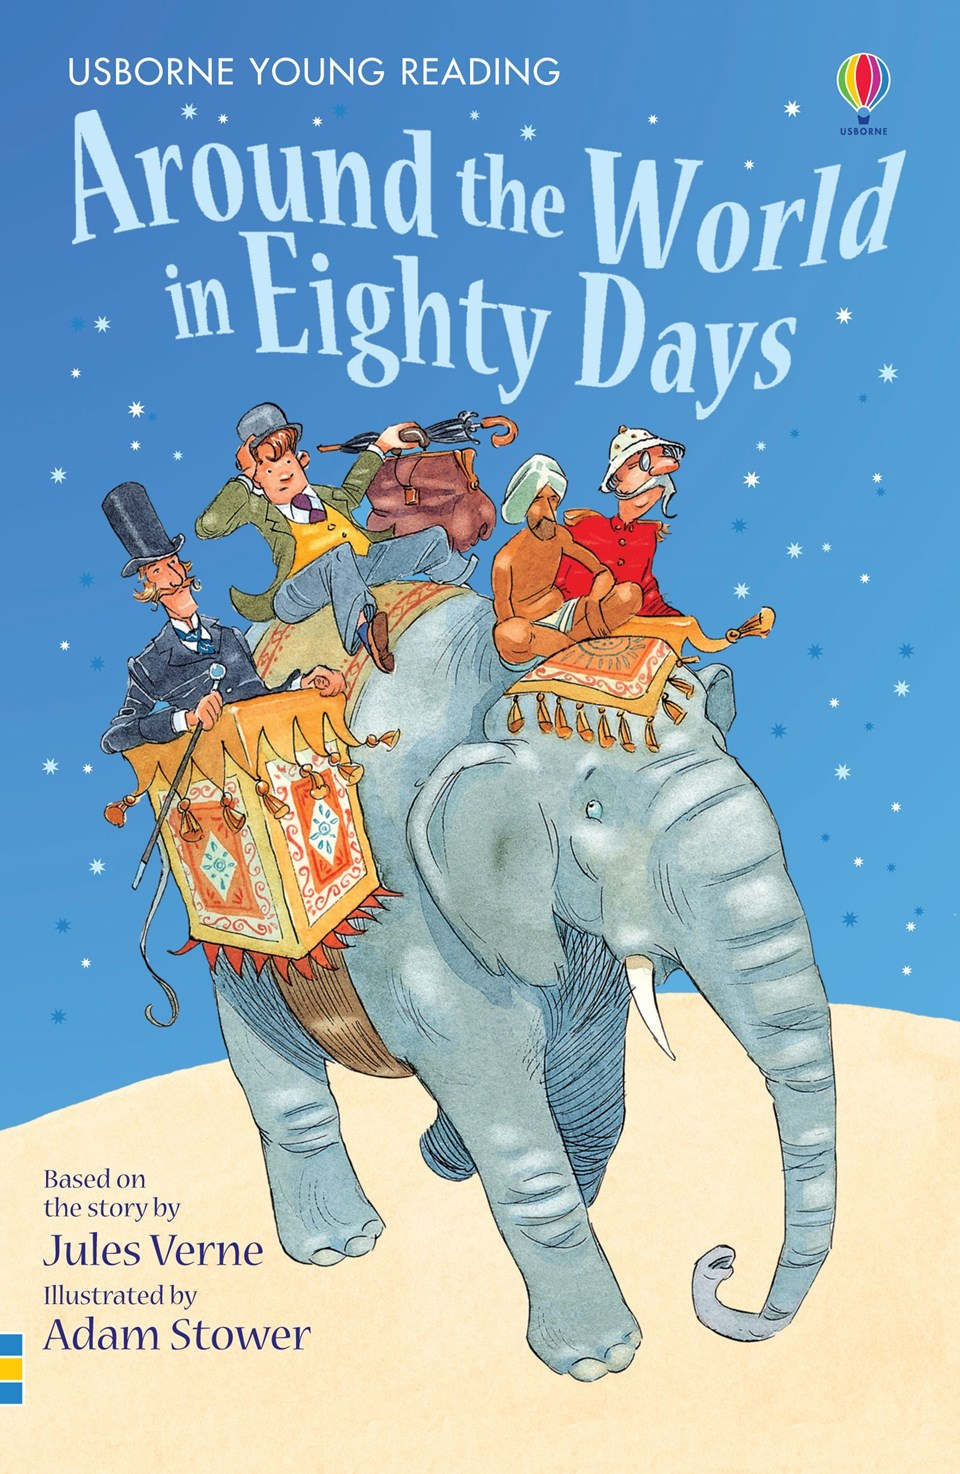 around the world in eighty days  usborne young reading 2